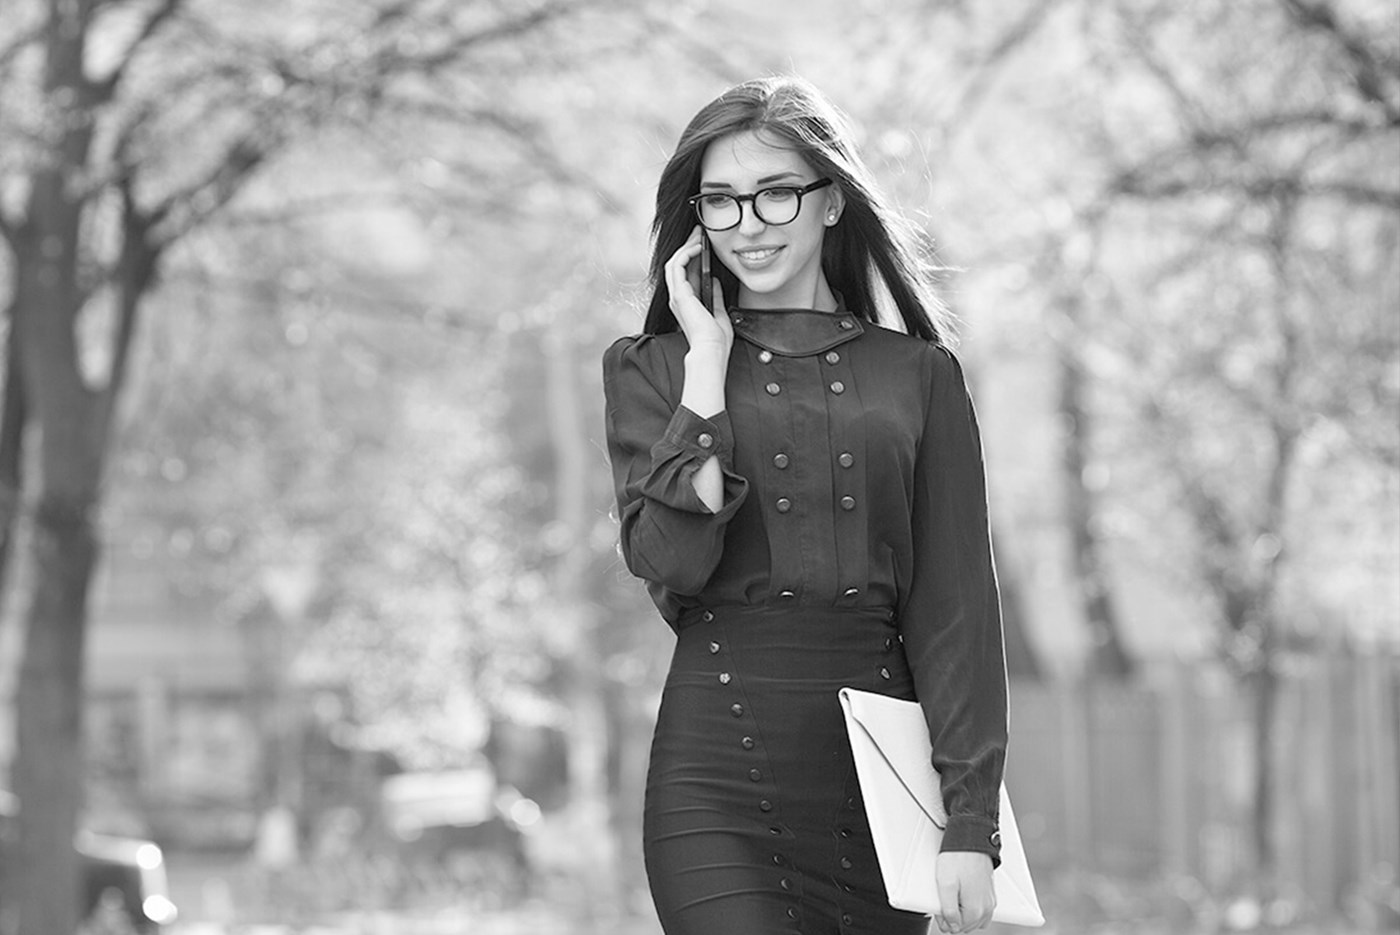 Female walking along park wearing glasses on a phone call